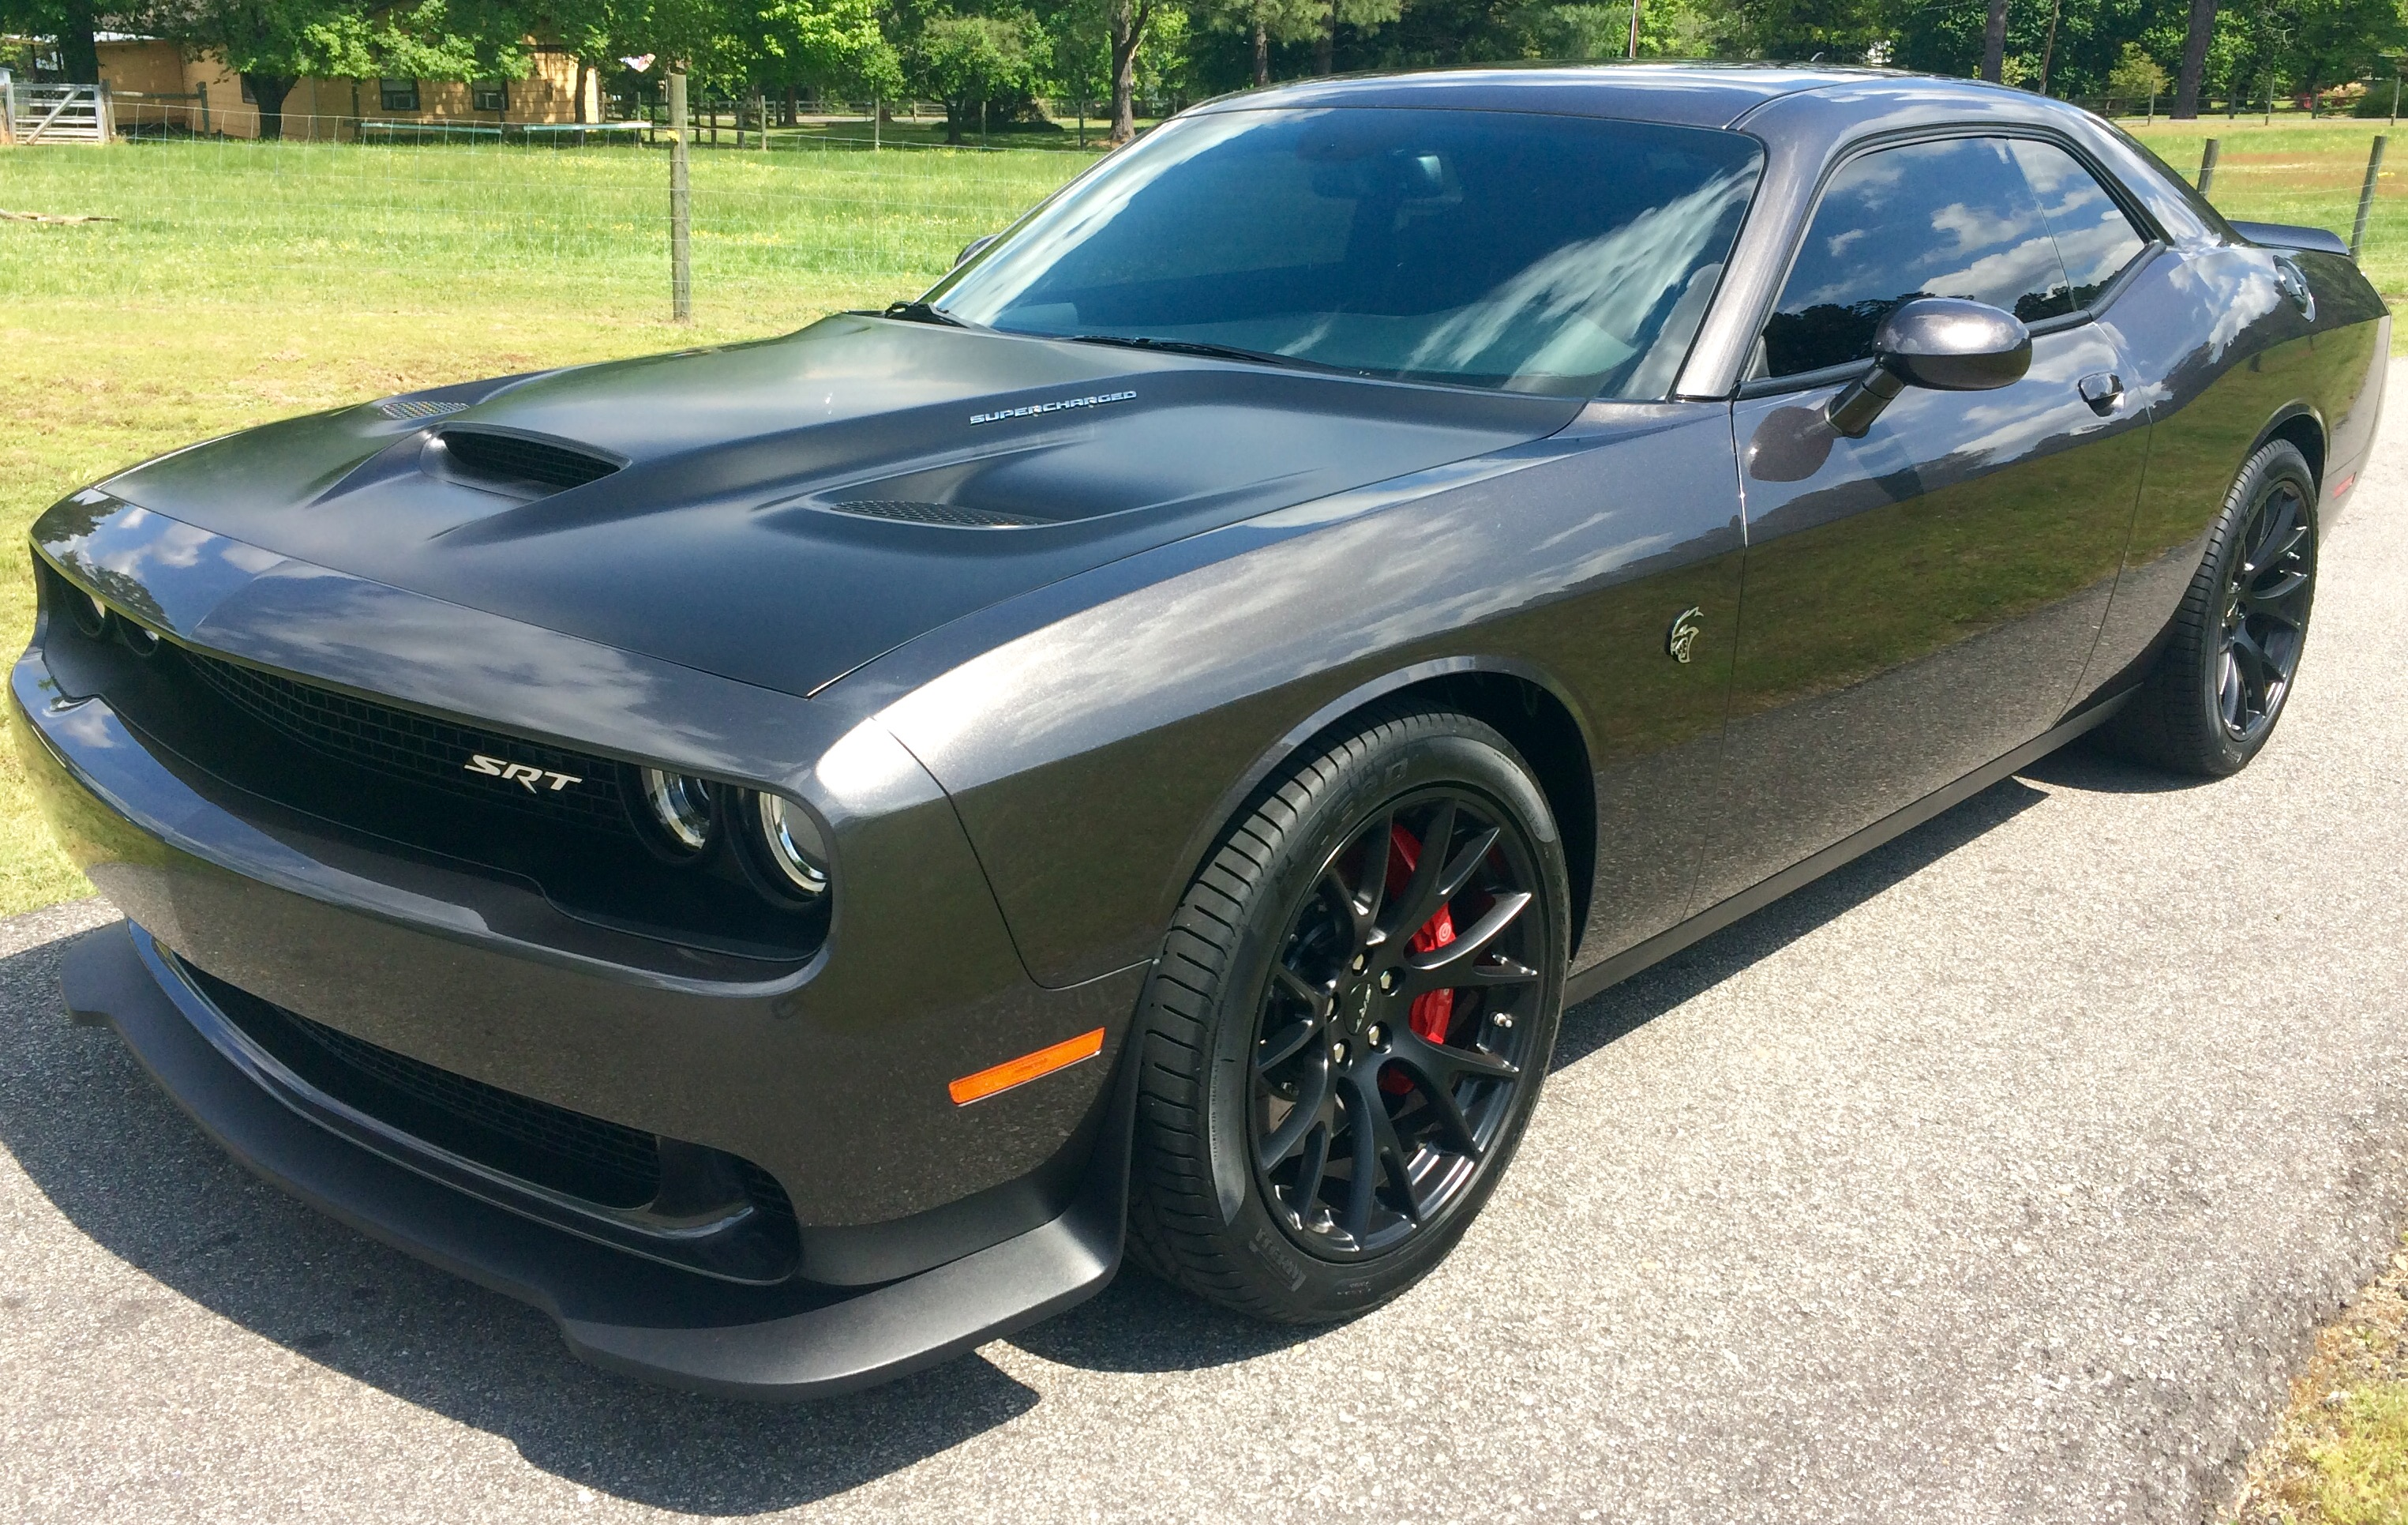 Dodge Challenger 2014 >> Pictures of Granite Crystal Challengers please | Page 3 | SRT Hellcat Forum